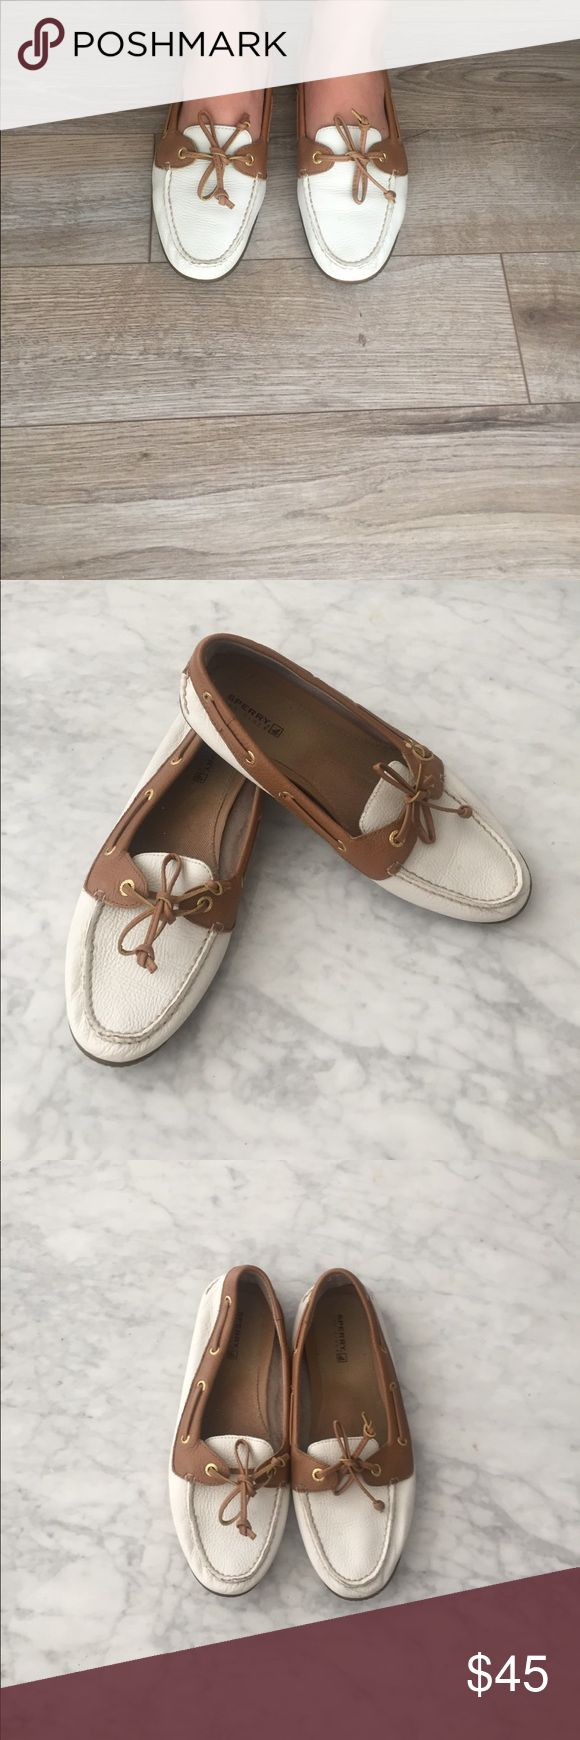 White Sperry Boat Shoes Only worn a couple of times, excellent condition. Have been sitting in my closet for a couple of years so I have decided to sell them! Sperry Shoes Flats & Loafers